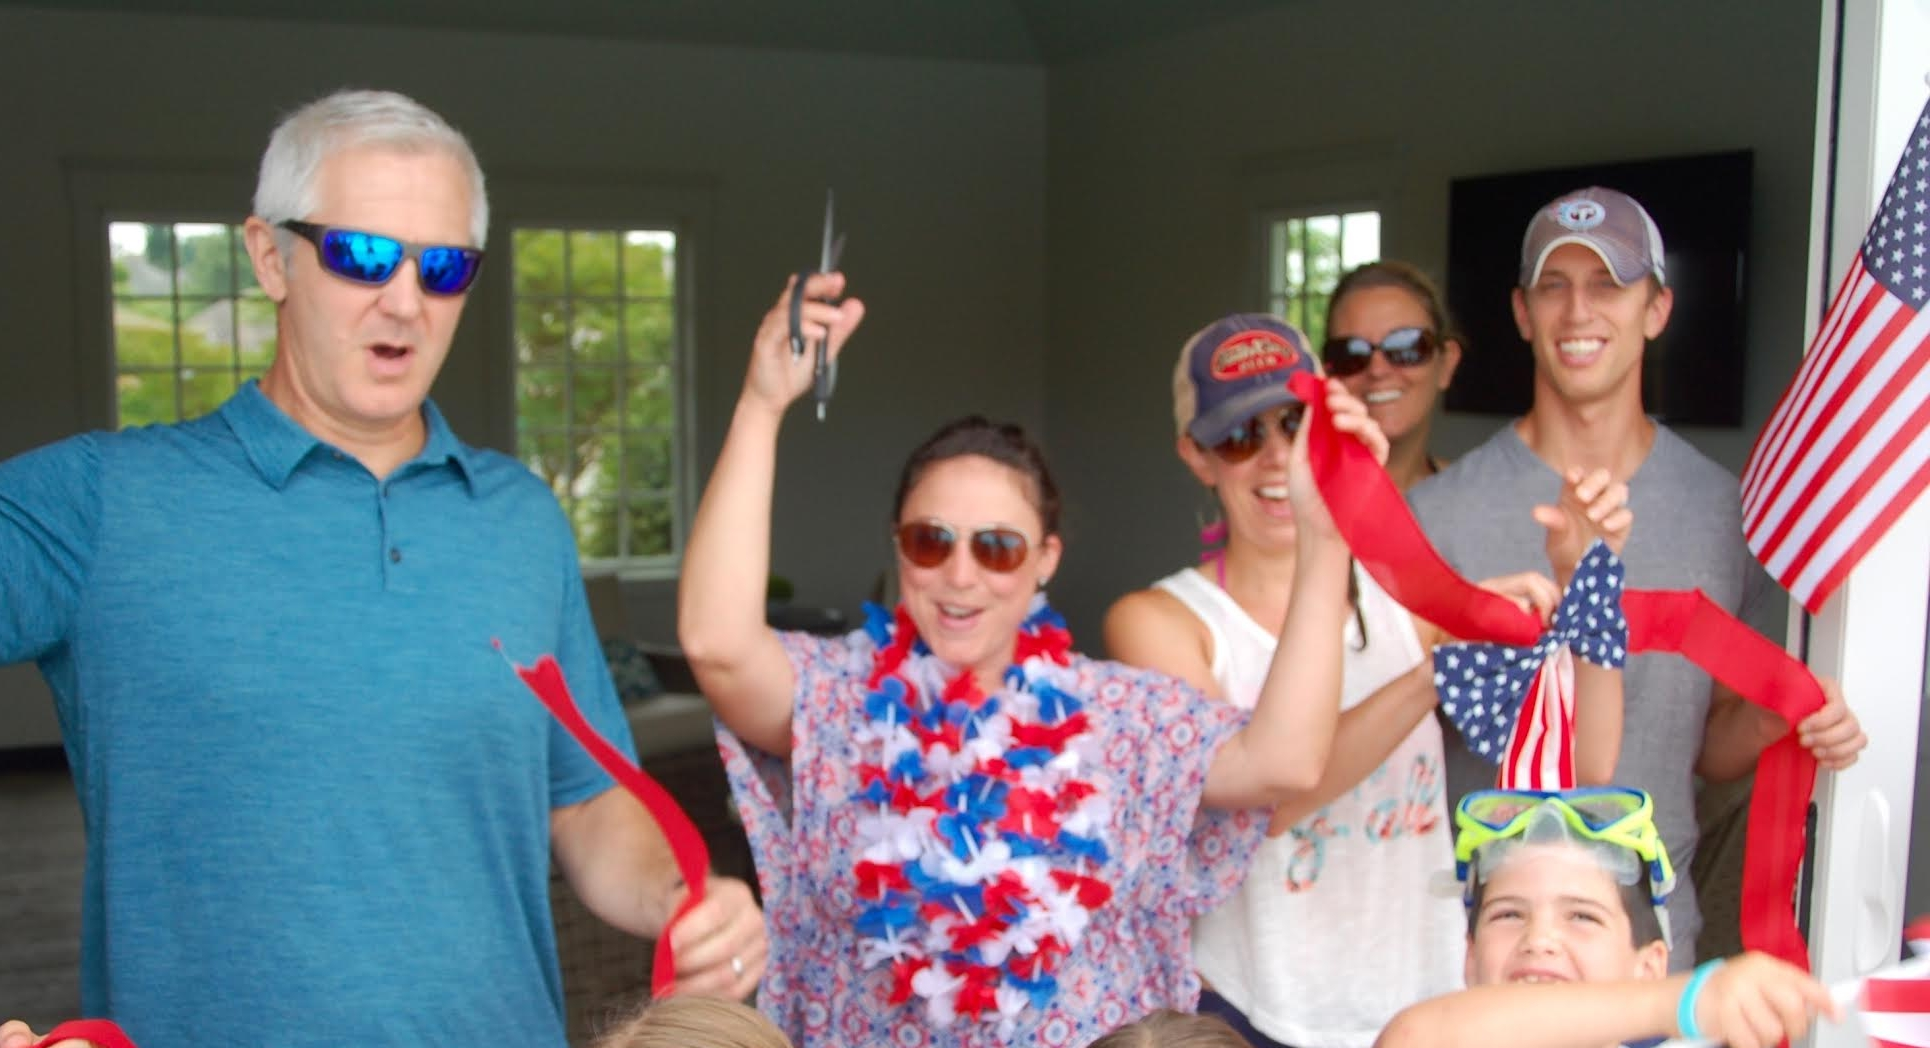 Pictured from left to right are Board members Mike Klein, Amy Silvers, Chrissy Gstell and homeowners, Travis and Jessica Konemann.